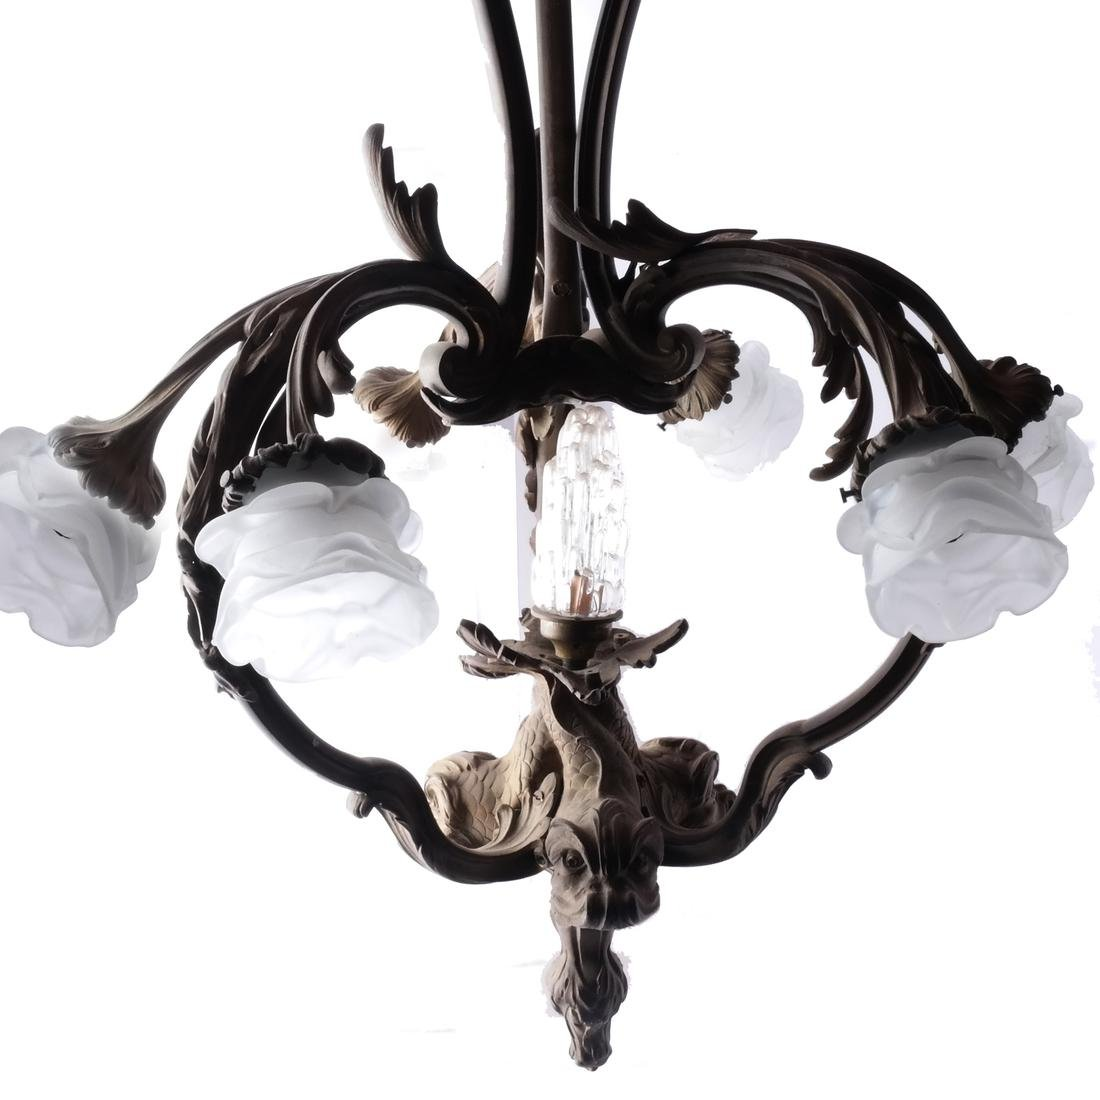 19th C. Rococo Allegorical French Chandelier